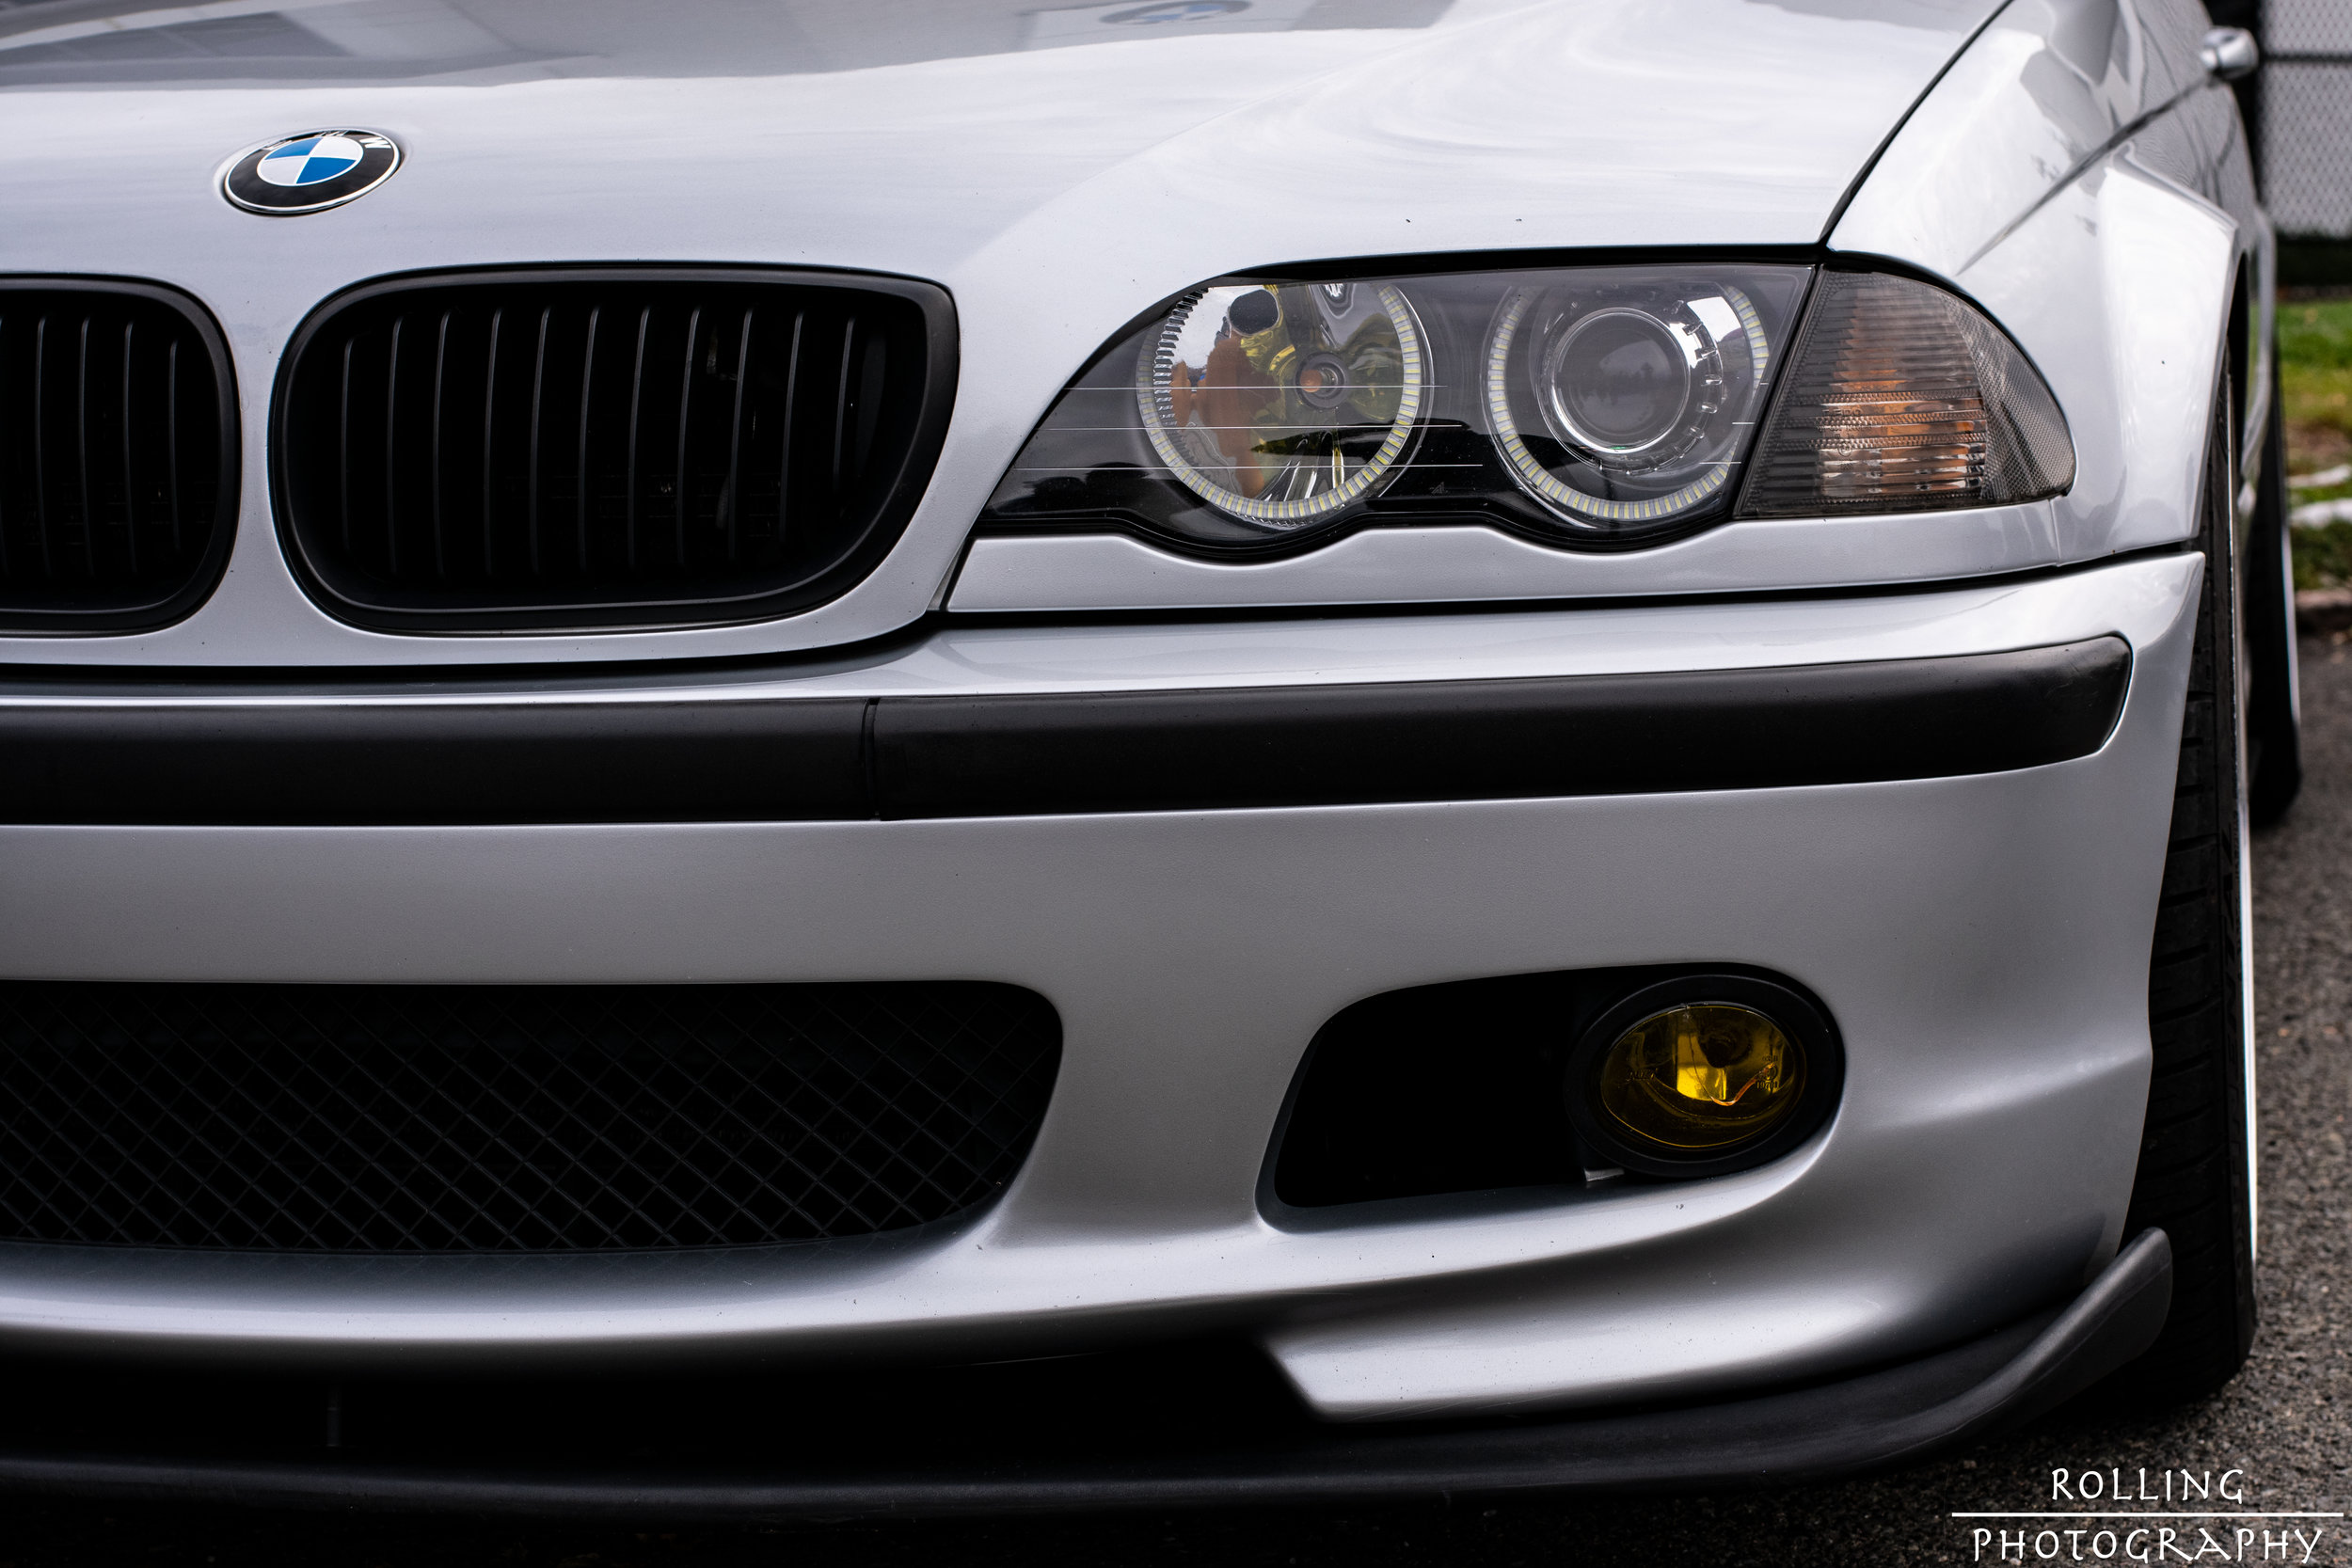 BMW 330ci  @serg_oli   ISO 200, 50mm, f / 8.0 Shutter Speed 1/250